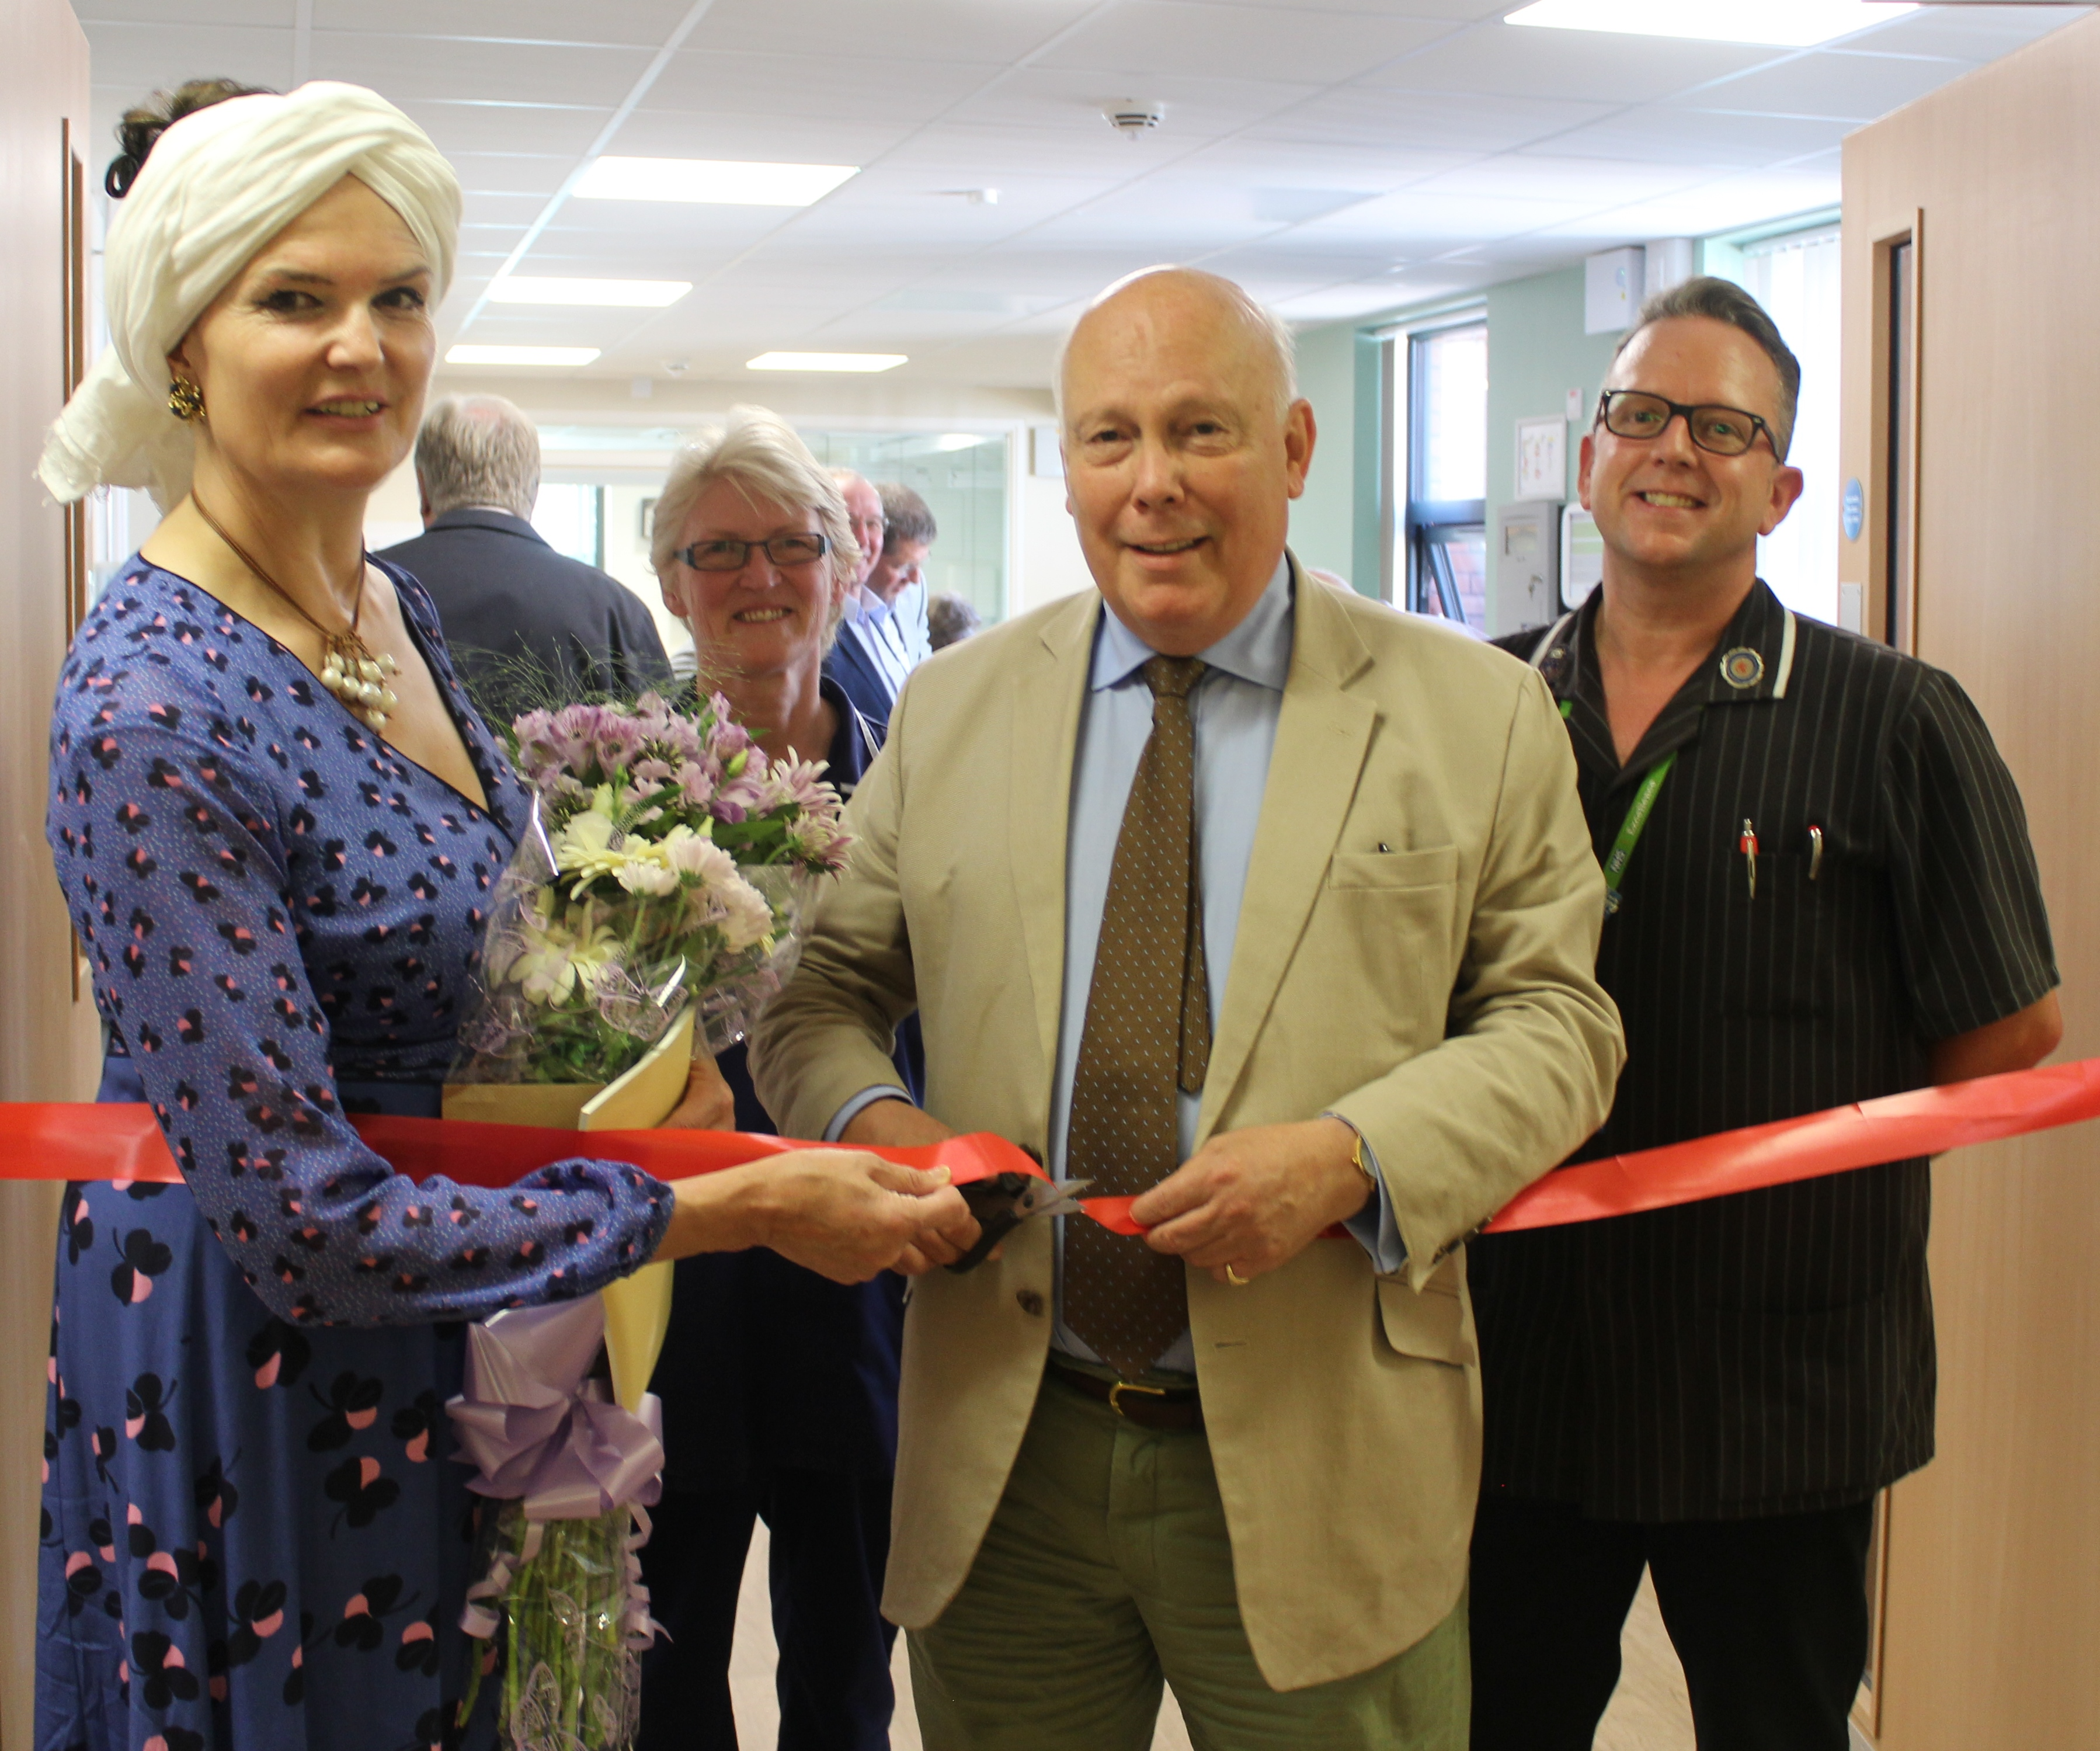 A theatrical grand opening for Blandford Hospital's new end of life care unit